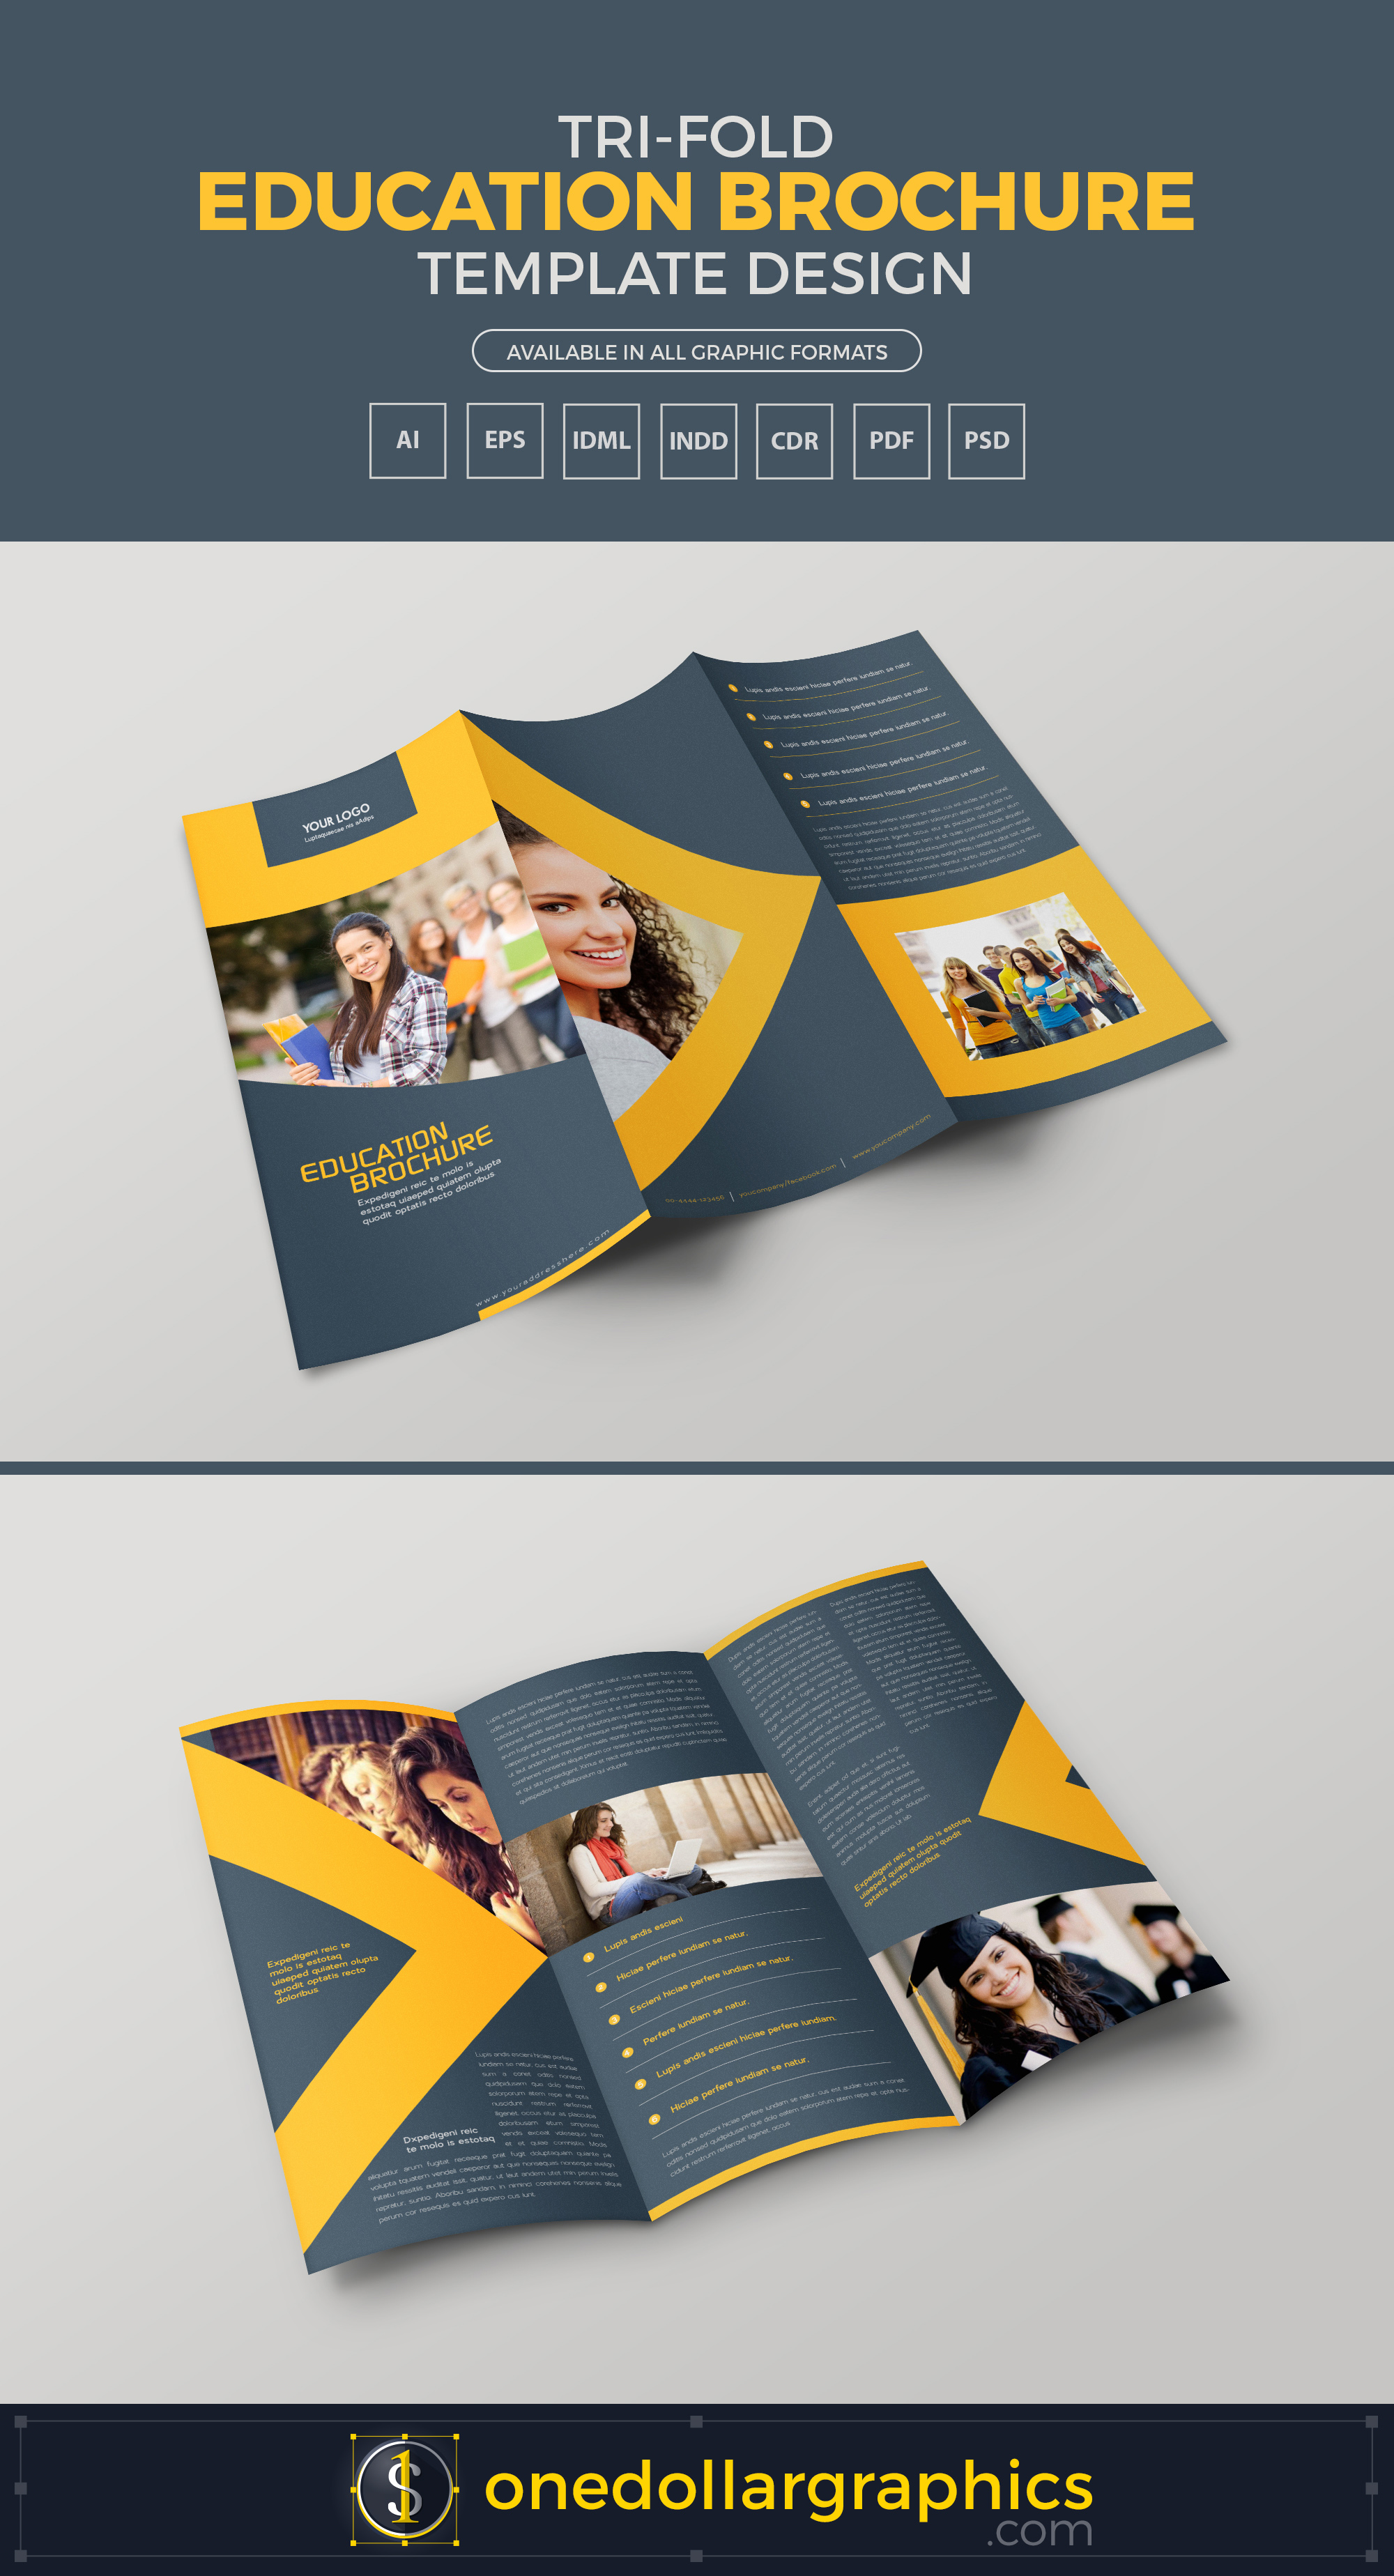 Tri fold education brochure template design in ai eps for Education brochure templates